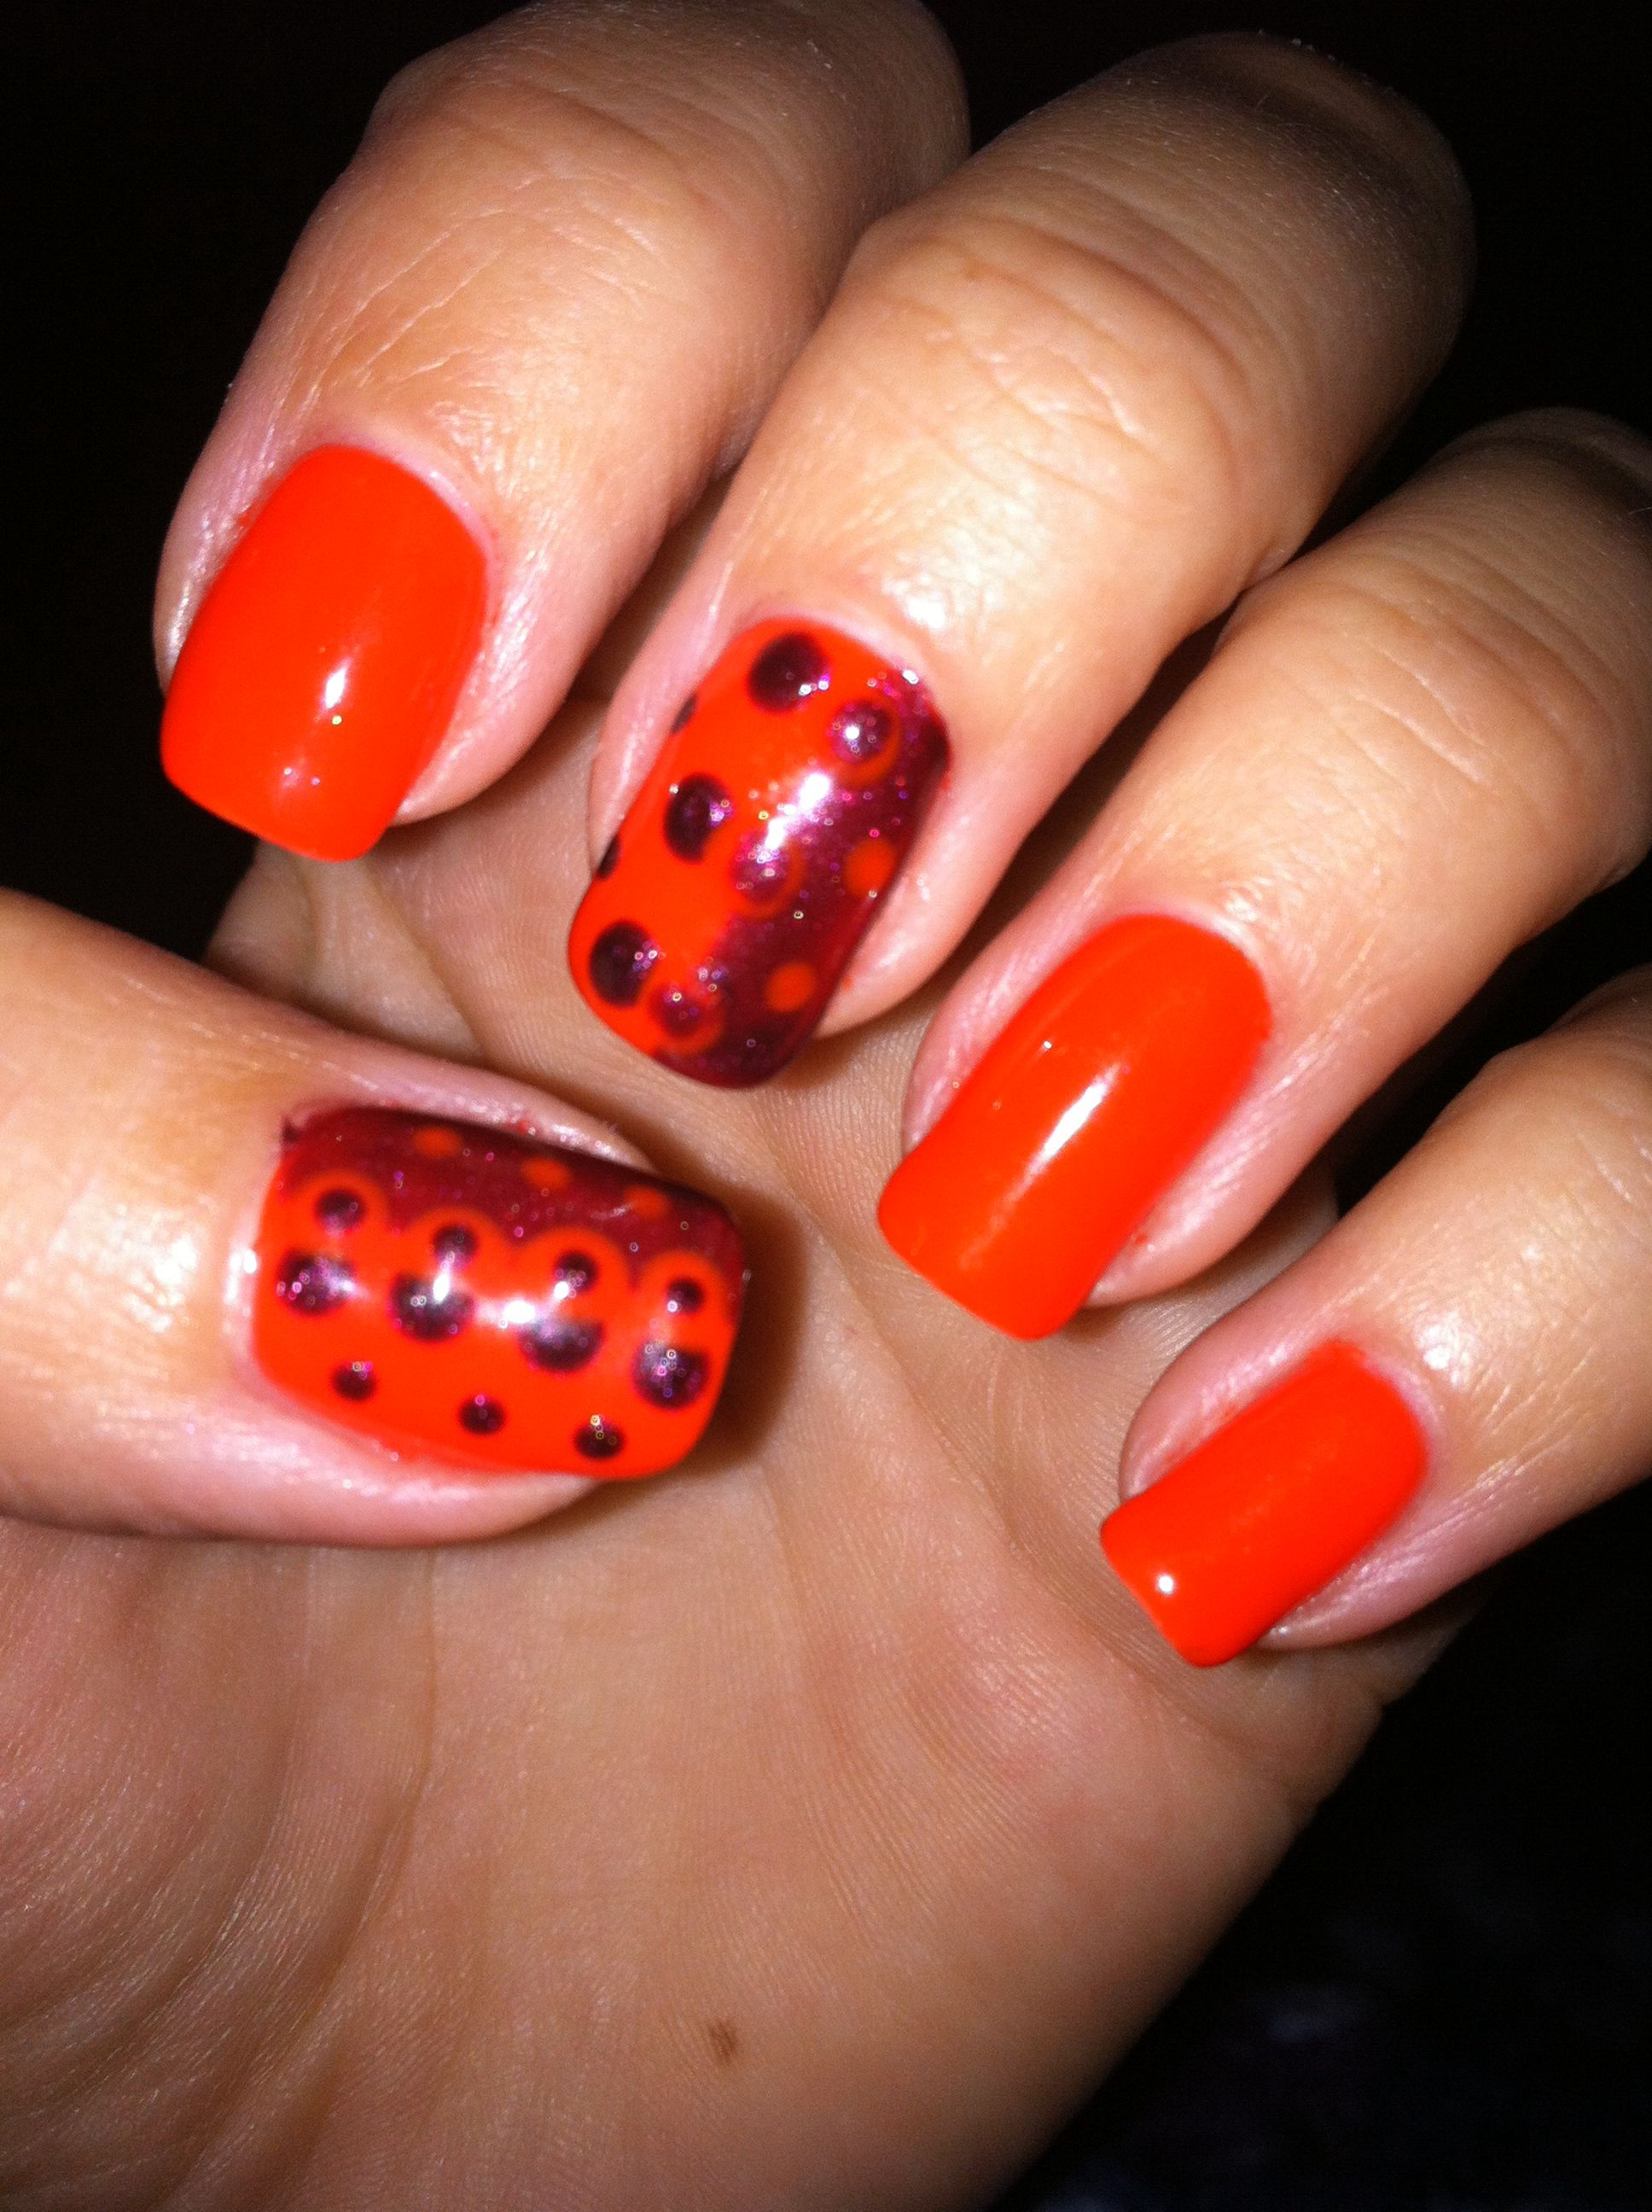 Gel nail art inspired by missjenfabulousyoutube nails by amanda gel nail art inspired by missjenfabulousyoutube prinsesfo Image collections